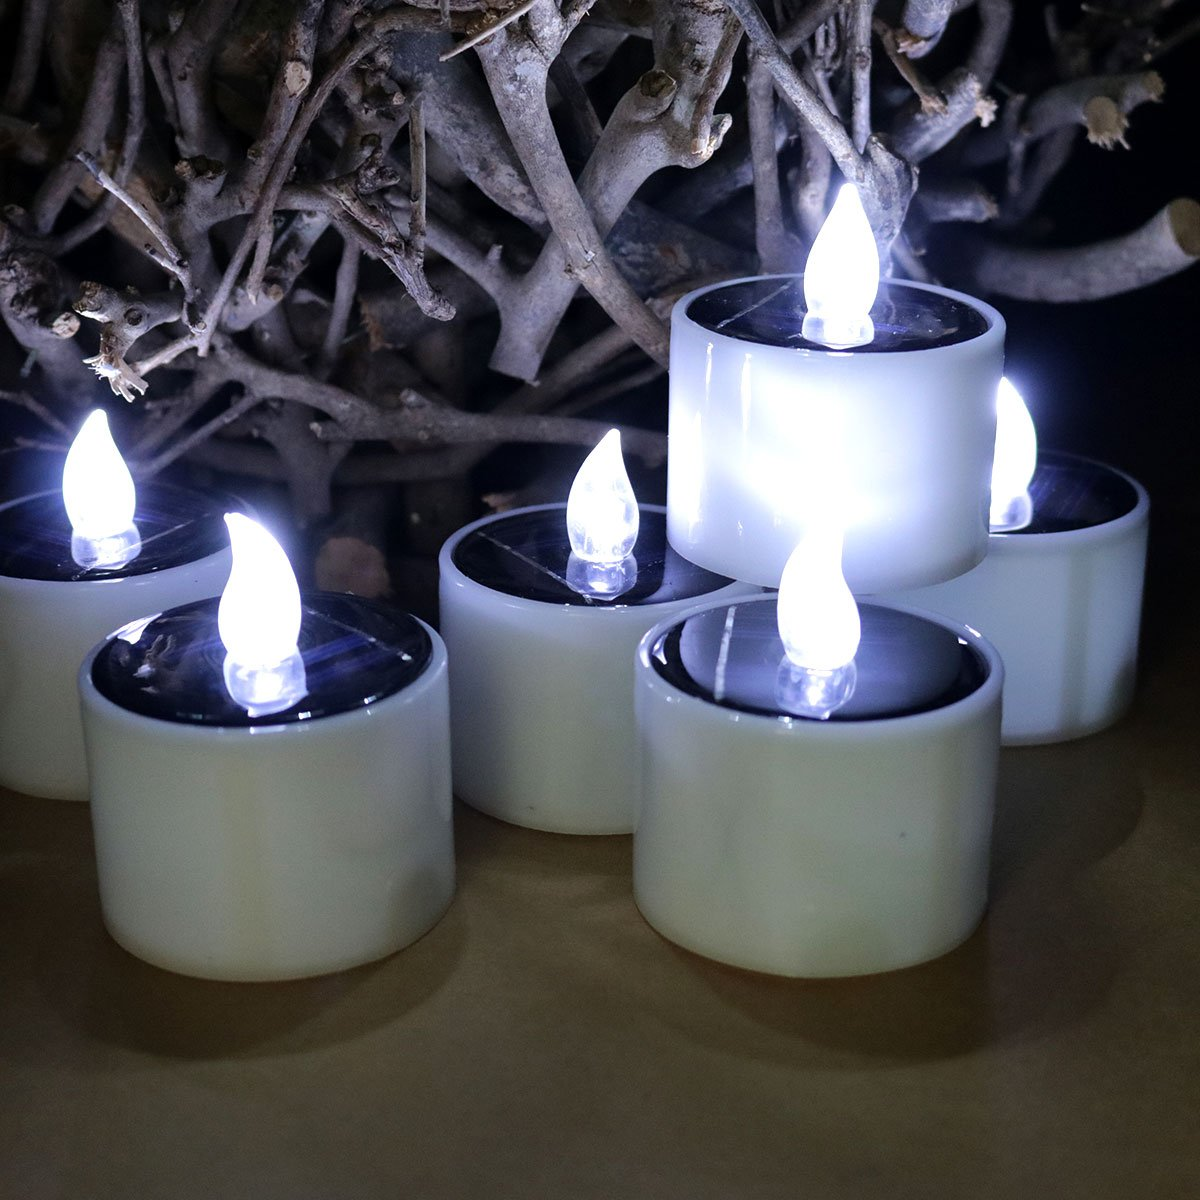 Youngerbaby Set of 6 Romantic Solar Power LED Tea Lights Candle Flameless Candles, LED Tealights for Home Decoration,Garden,Outdoor(Cool White)